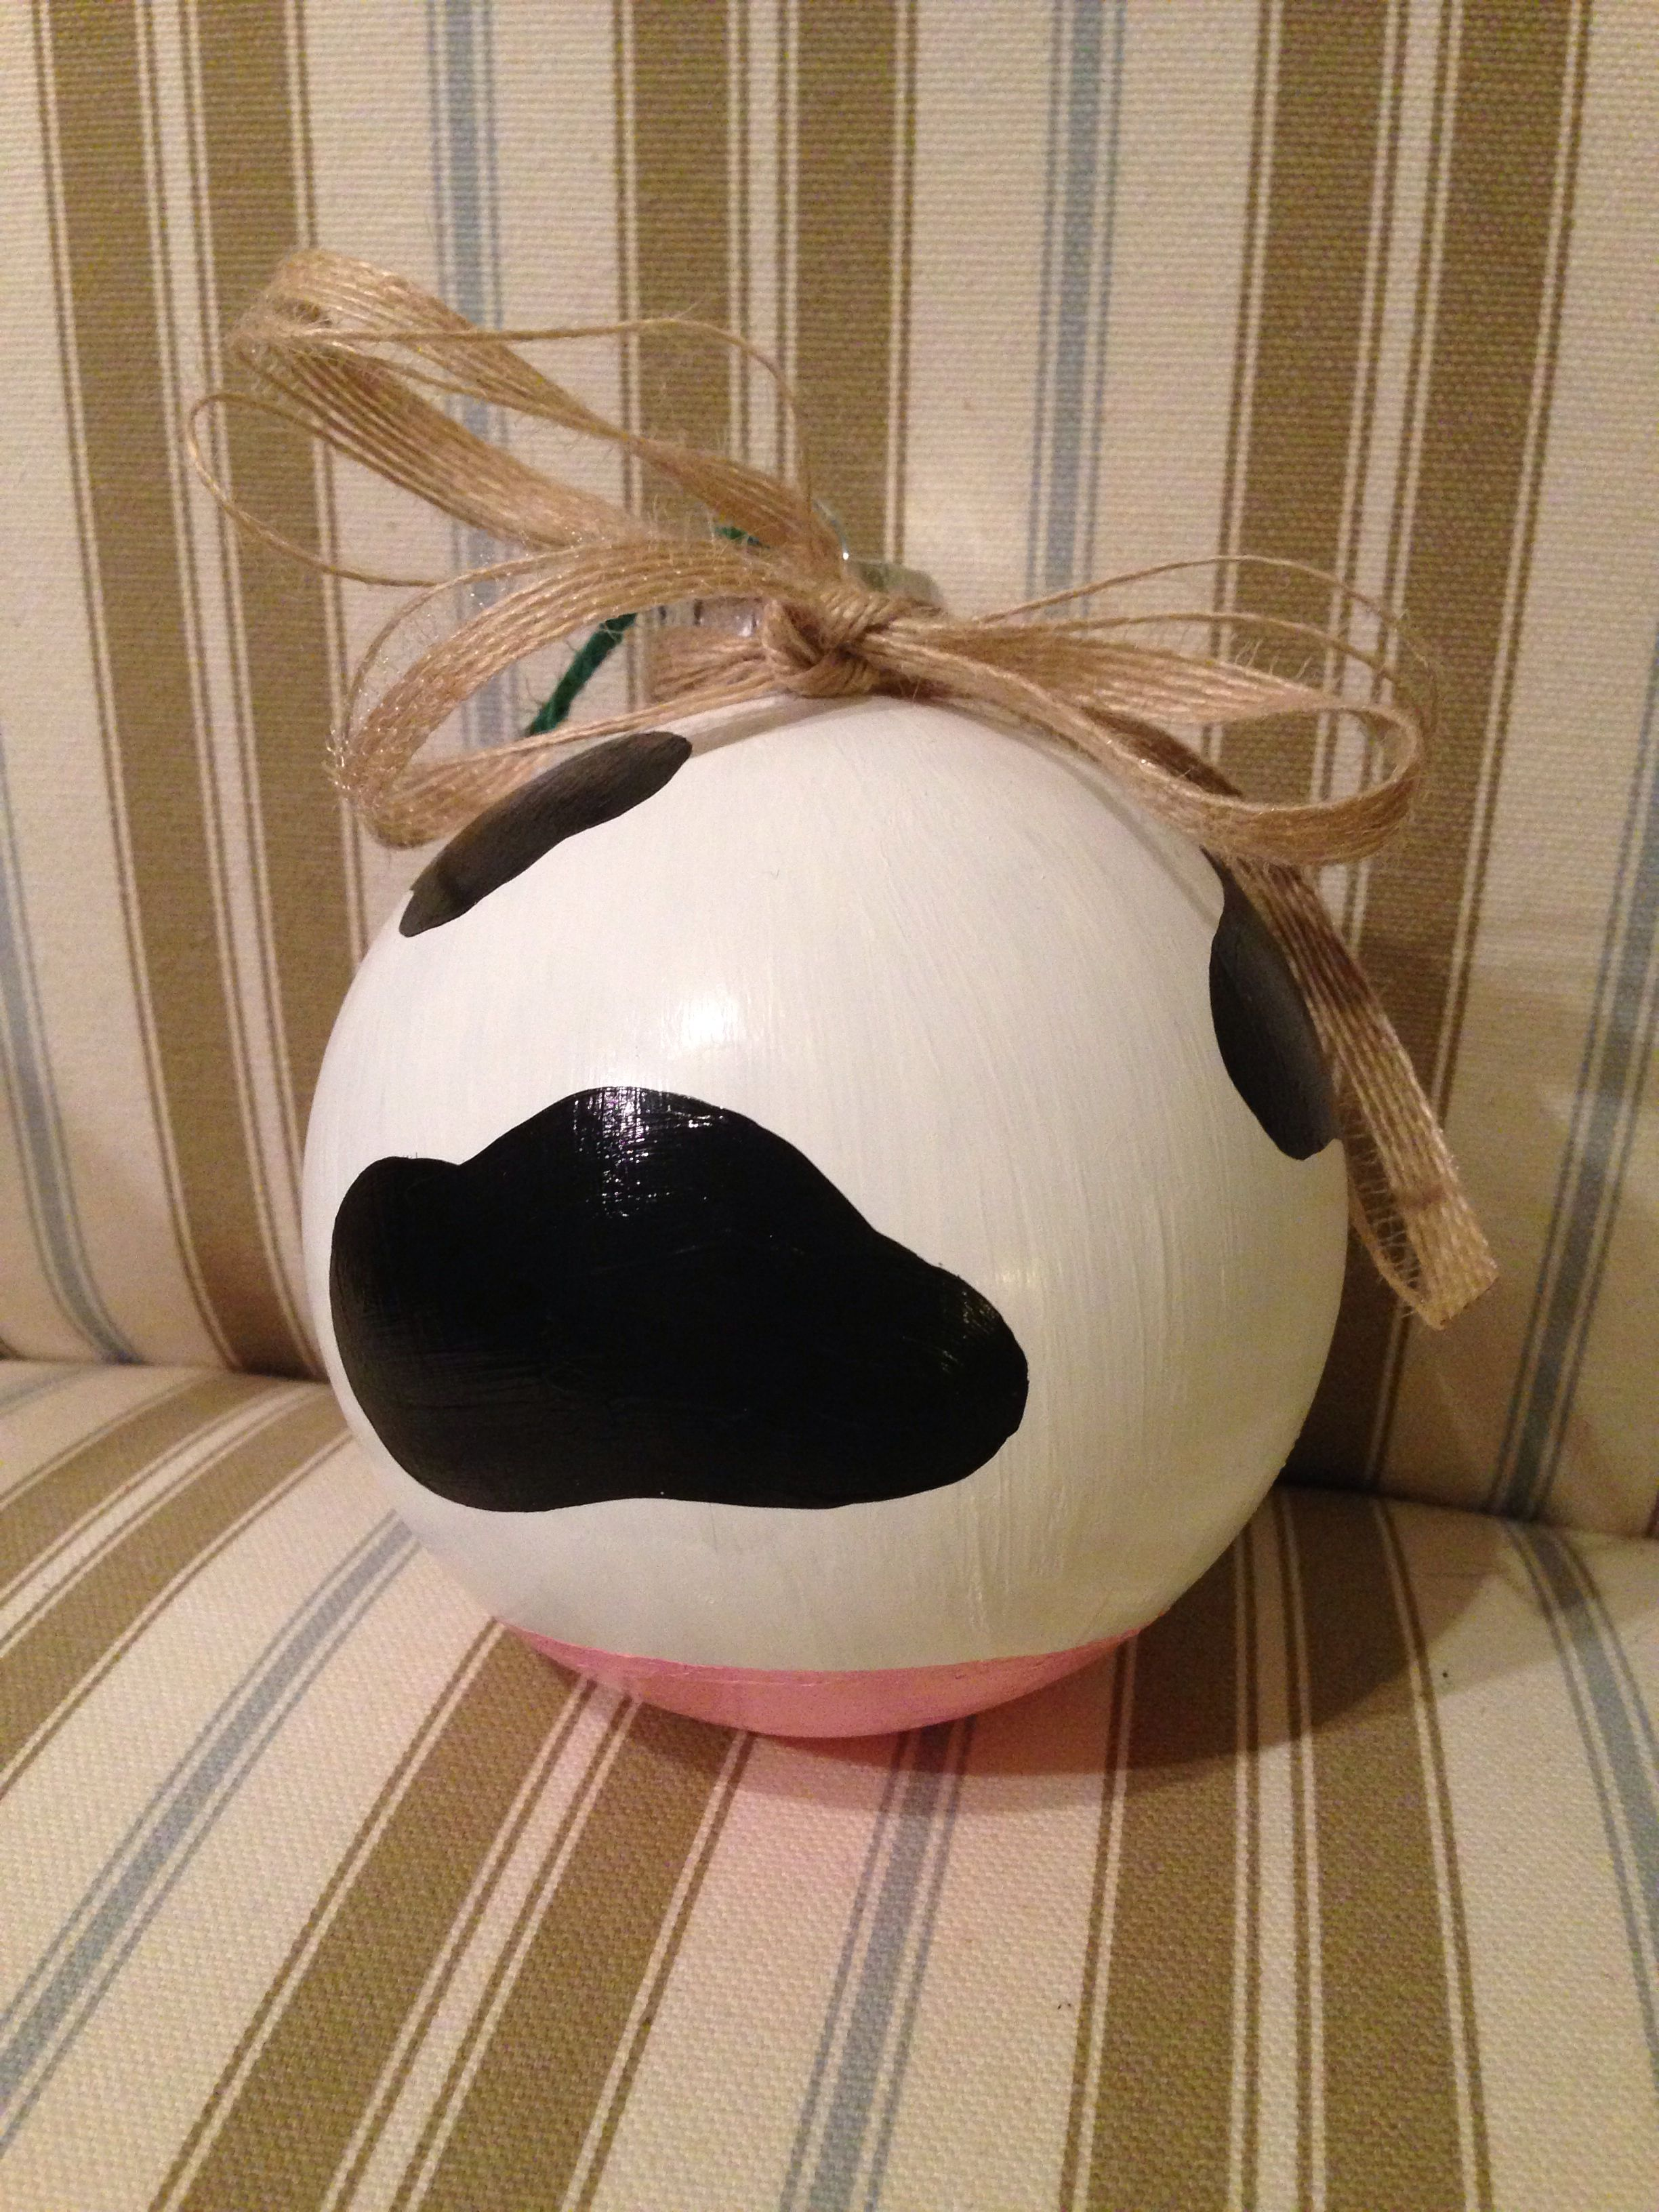 Pin By Sarah Elizabeth Leck On Make Country Christmas Ornaments Cow Ornaments Cow Craft